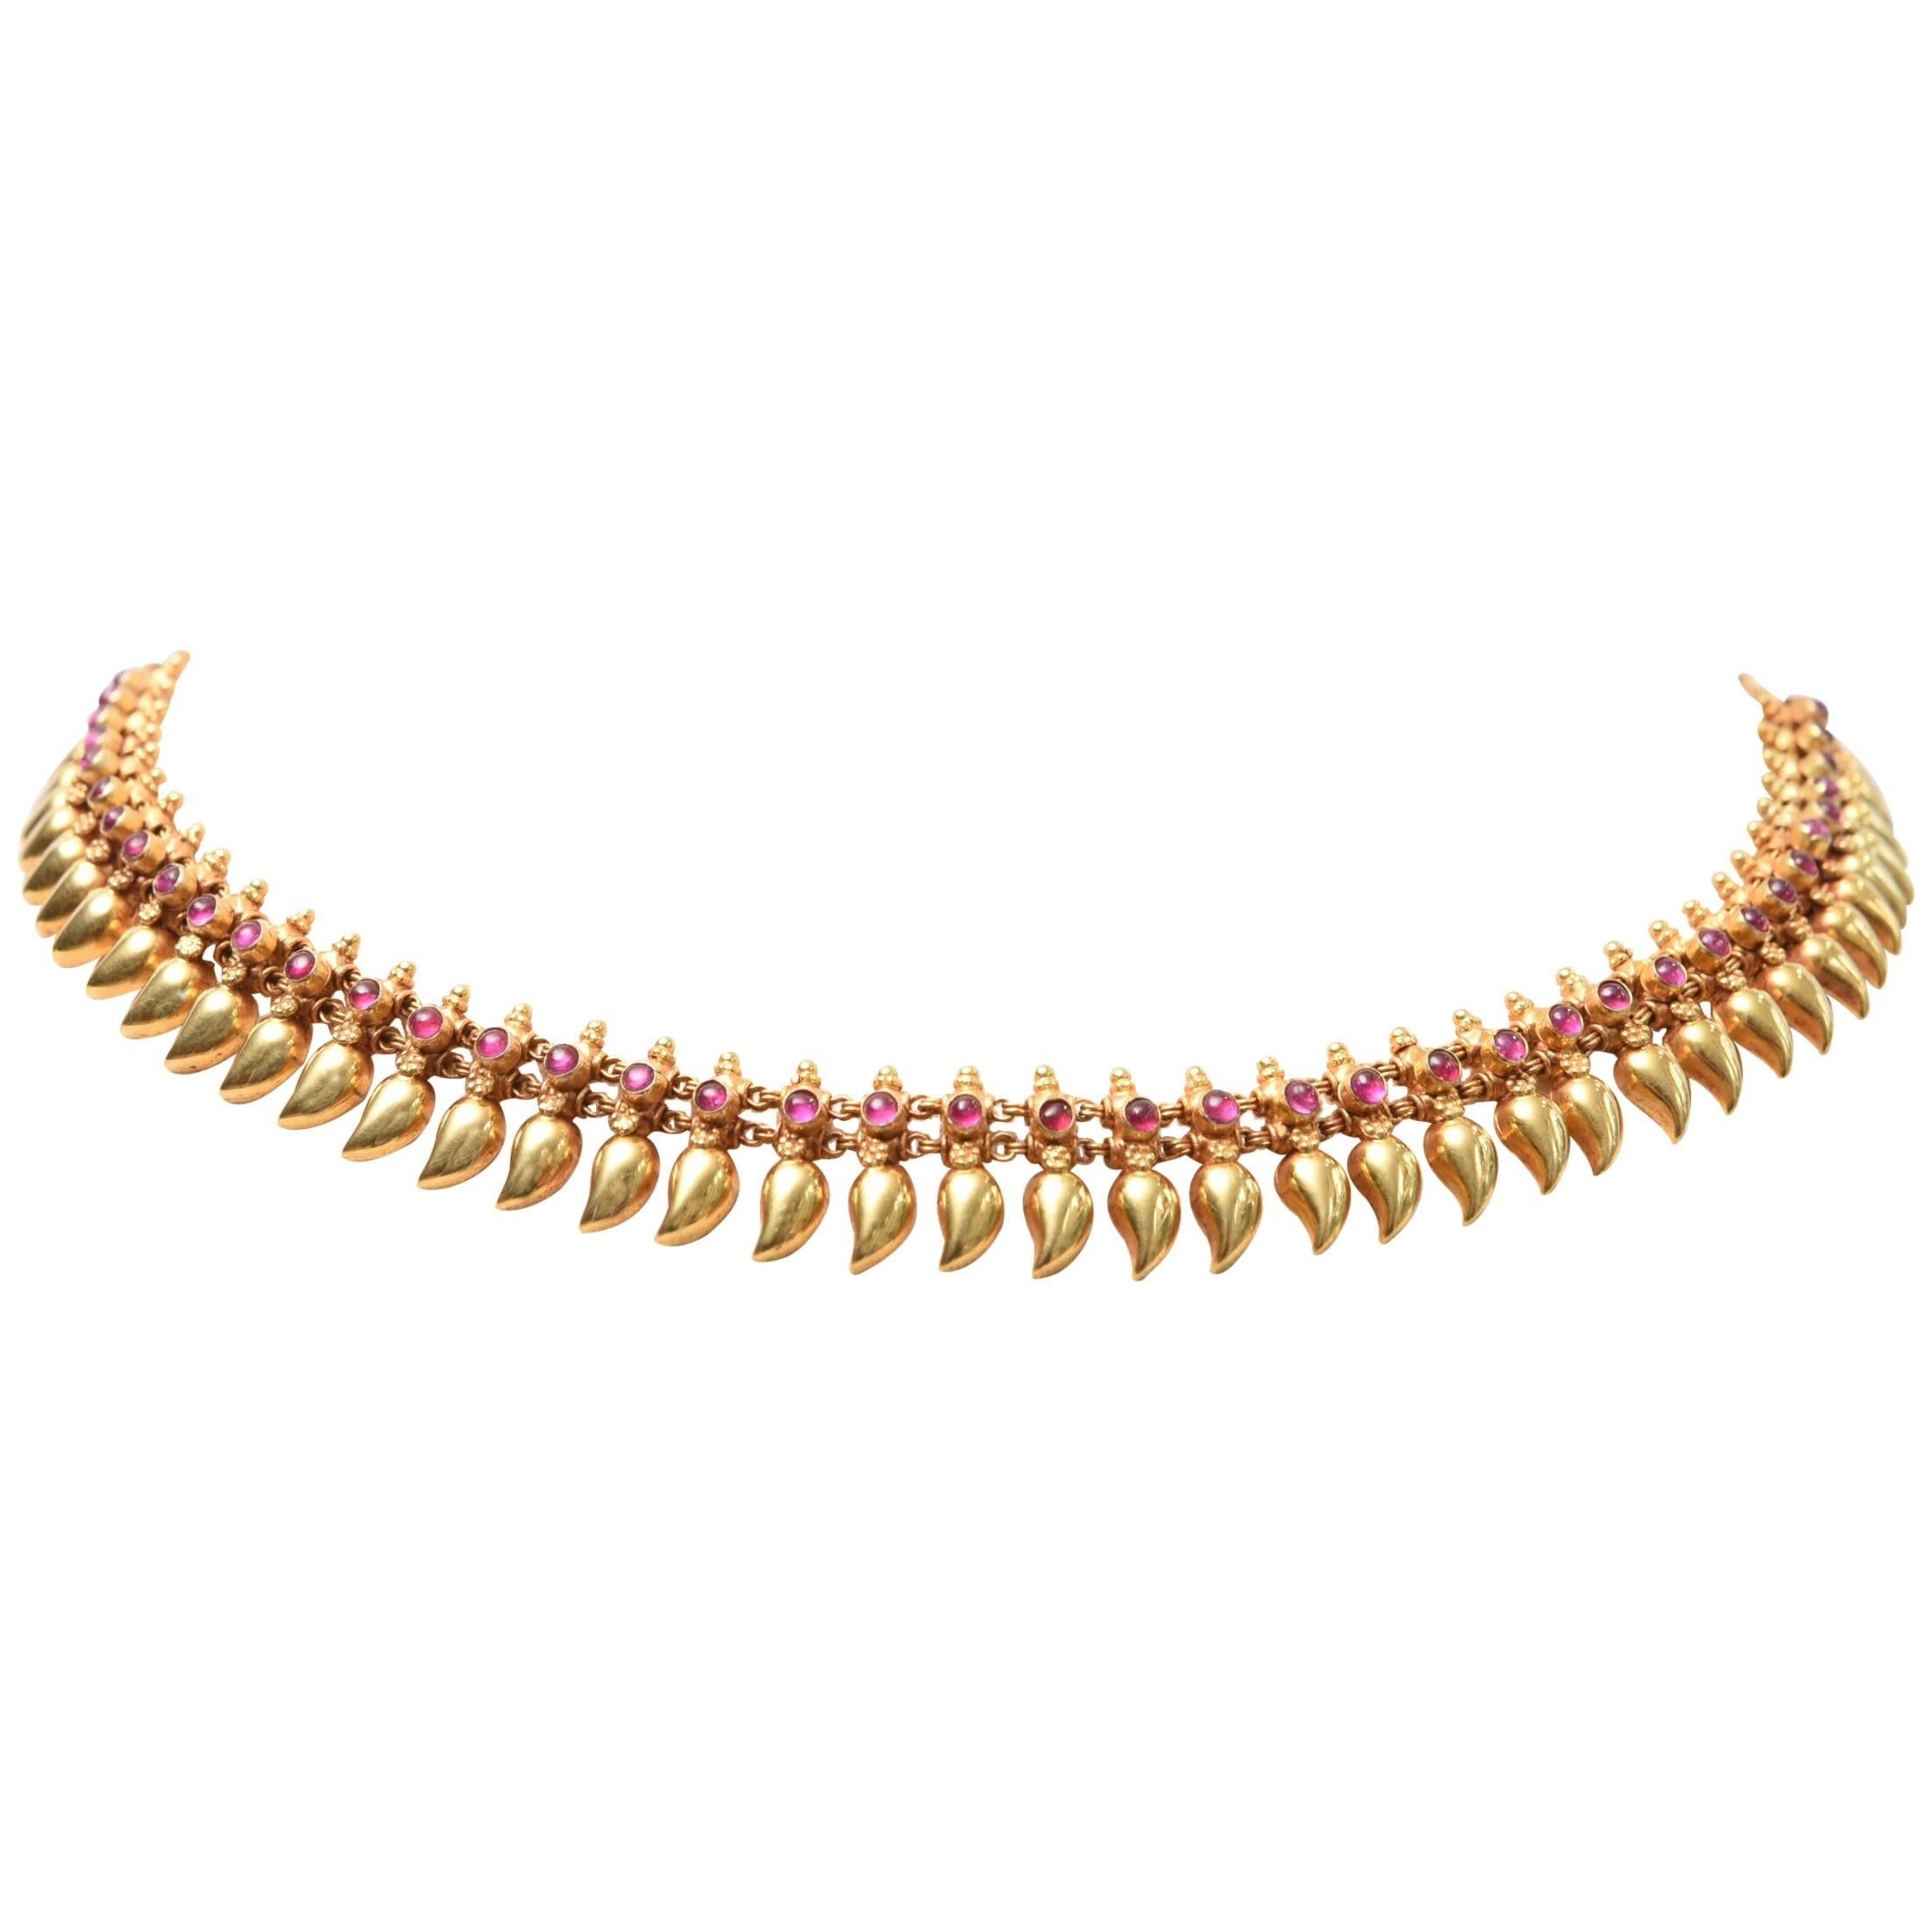 22 Karat Gold and Cabochon Ruby Necklace